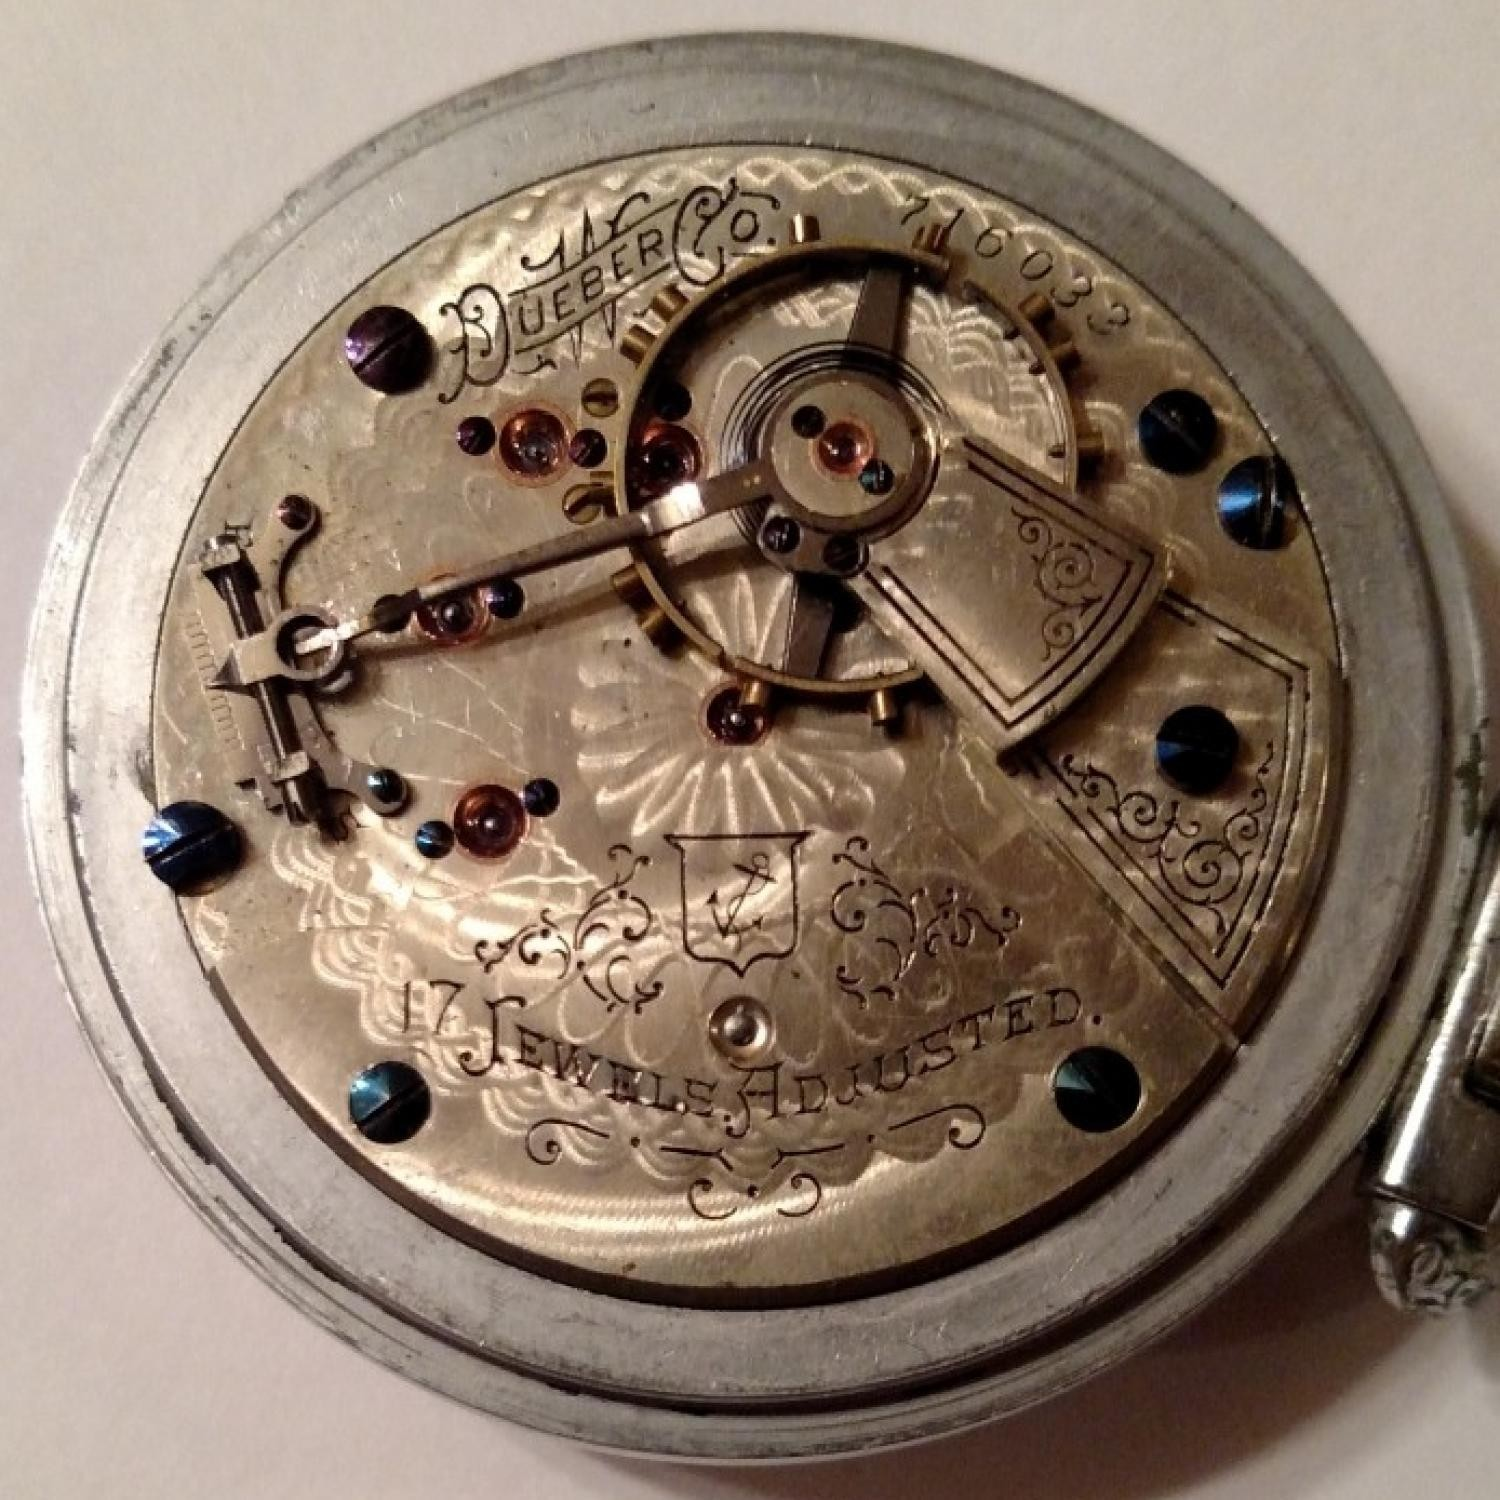 Image of Hampden Anchor (in shield) #716033 Movement